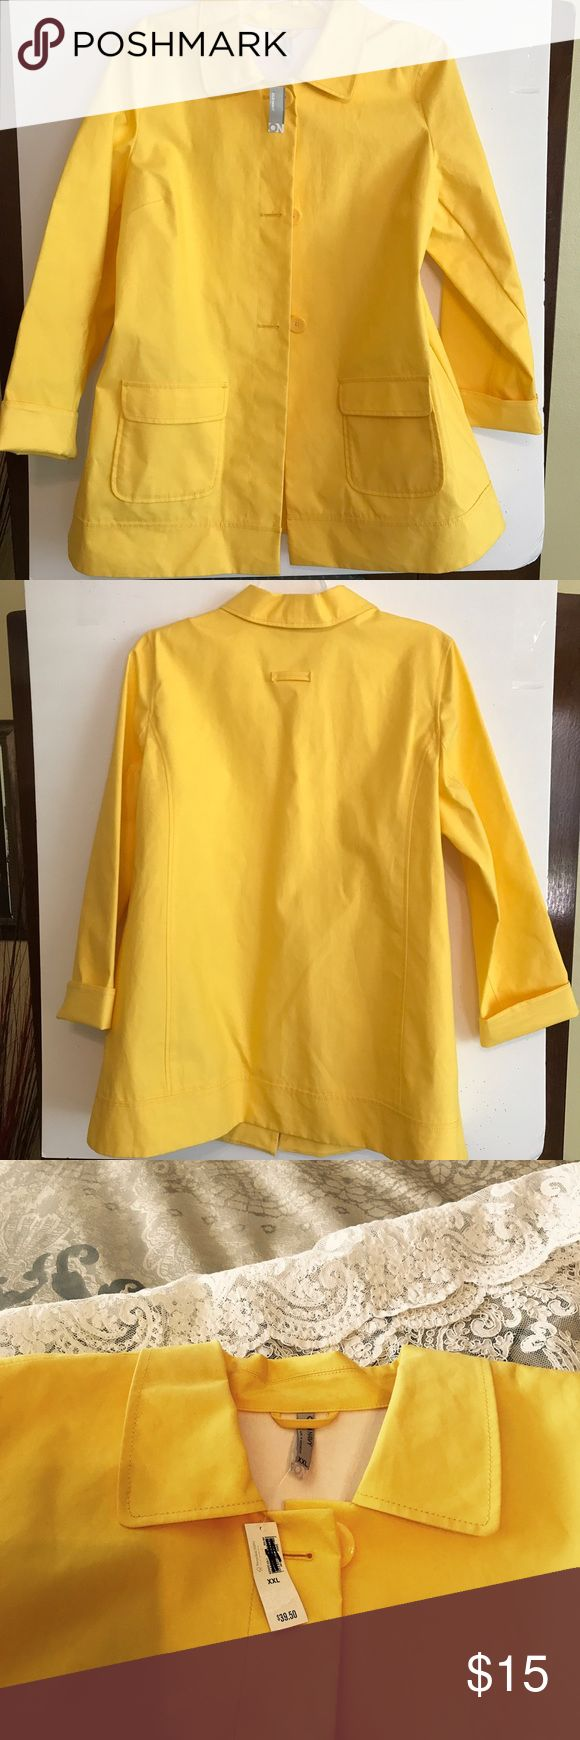 Yellow Old Navy rain coat NWT bright yellow unlined Old Navy rain coat.  This would be 3/4 length on most people.  Patch pockets with flaps on front, sleeves have cuffs.  Buttons down the front.  Perfect condition.  No odors and non smoking home. Old Navy Jackets & Coats Trench Coats